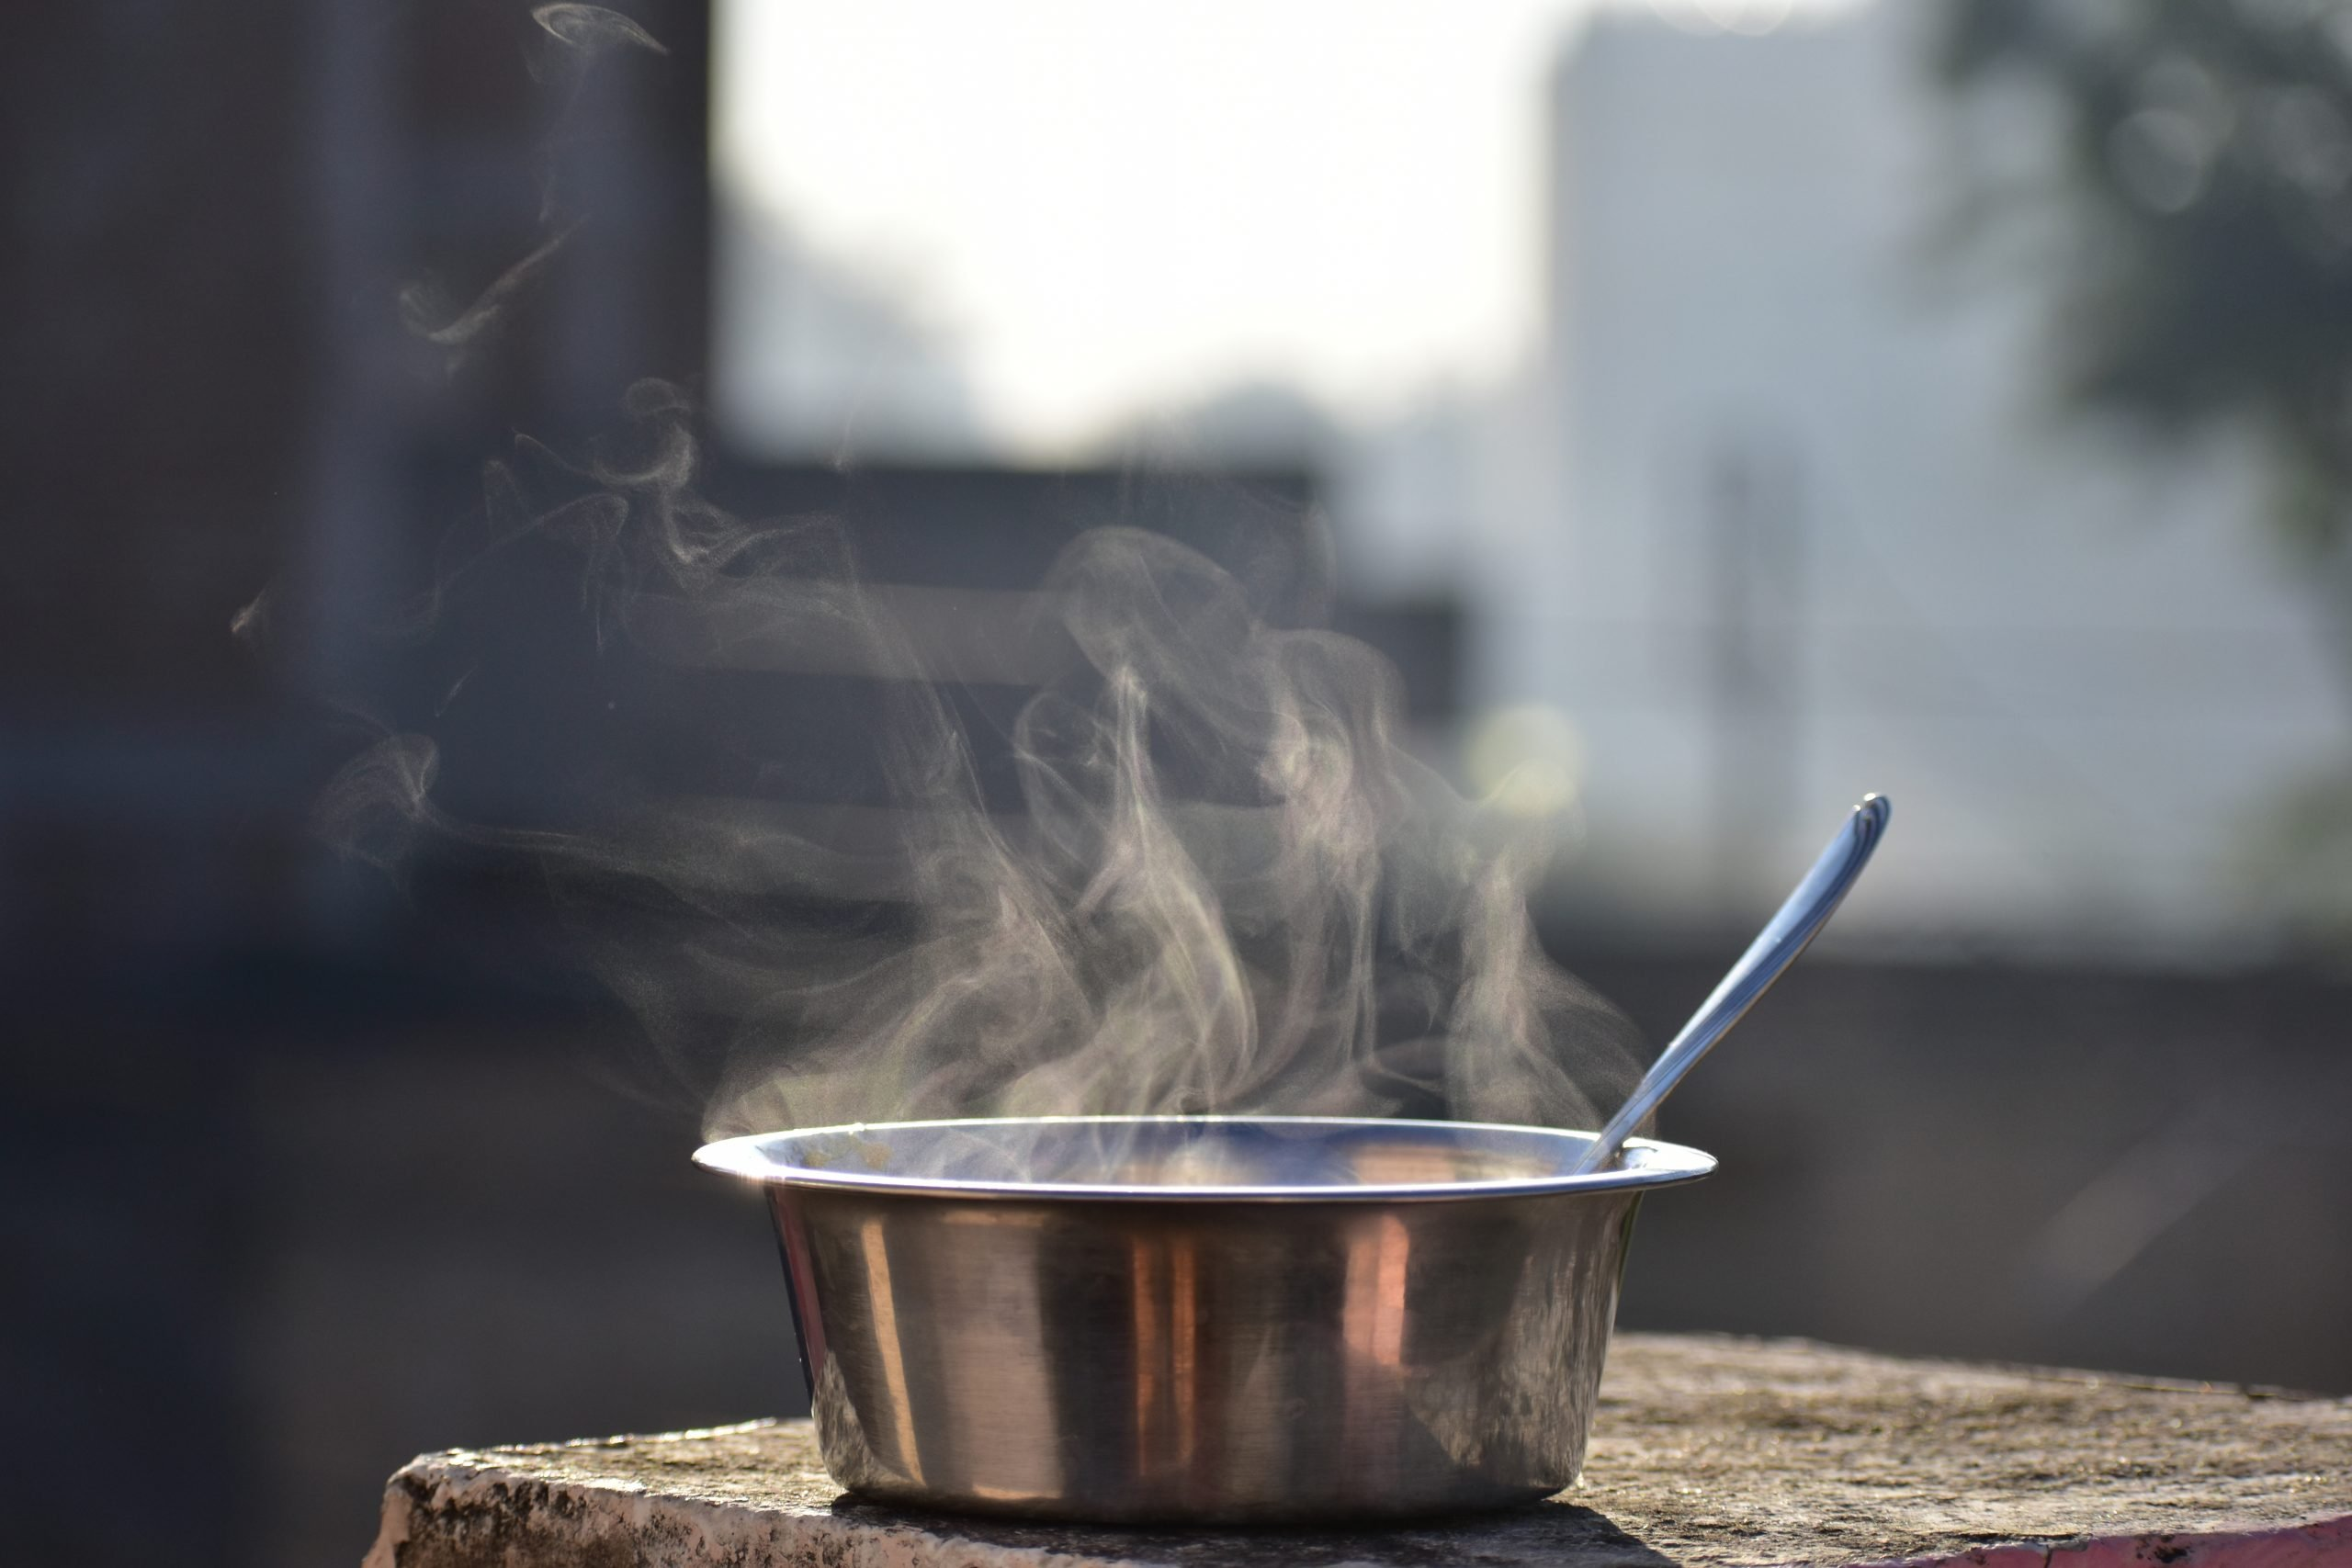 Hot food in a bowl